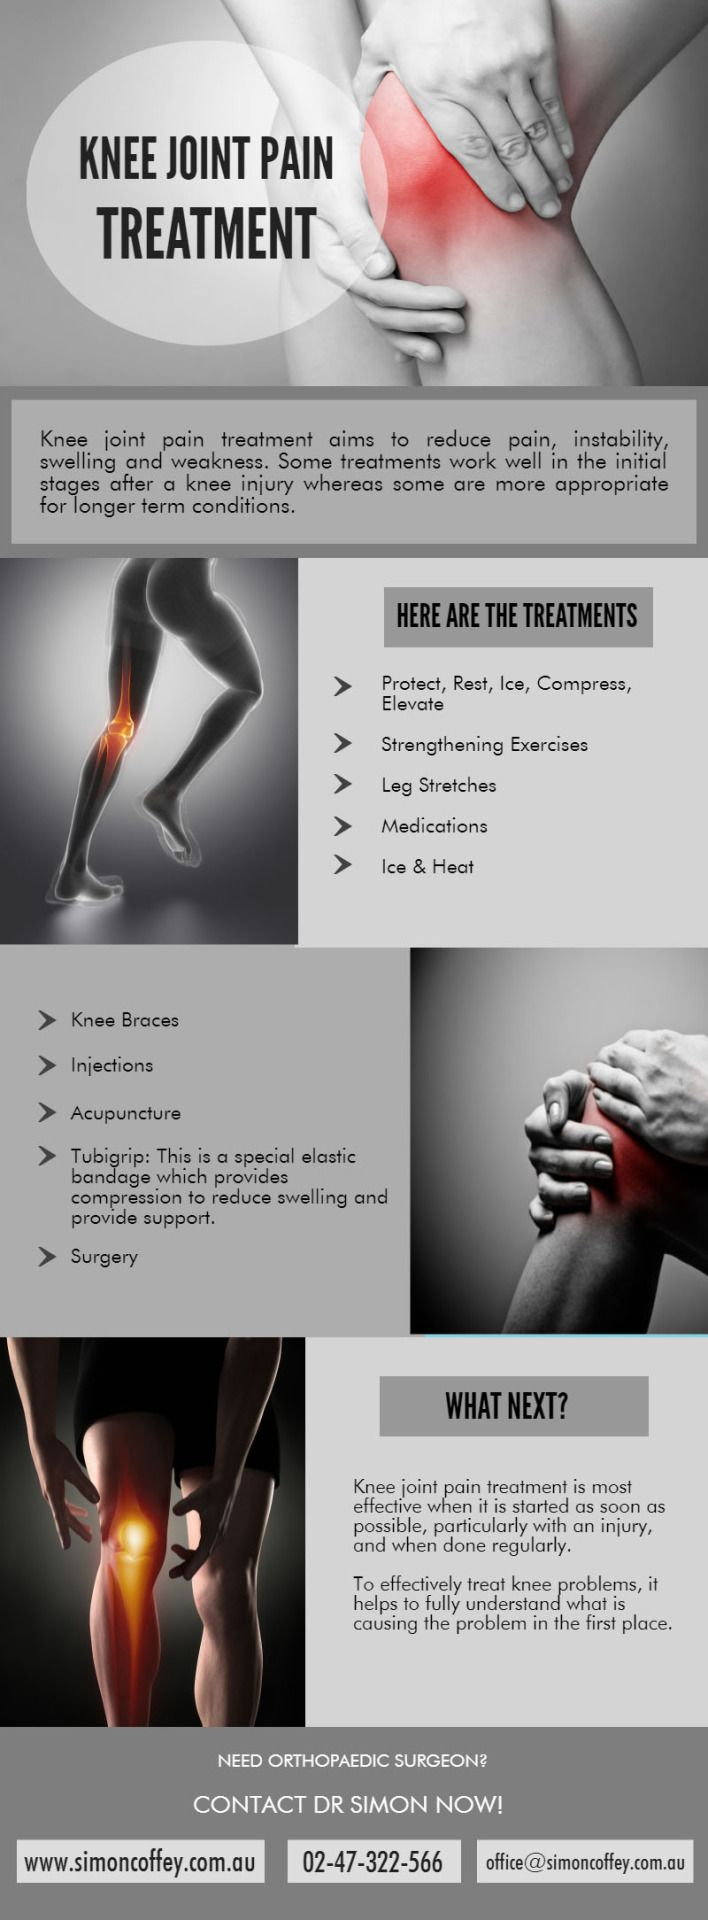 Knee Replacement Joint Pain Treatment - Dr. Simon Coffey  #KneeReplacement #TotalKneeReplacement #KneeSurgery